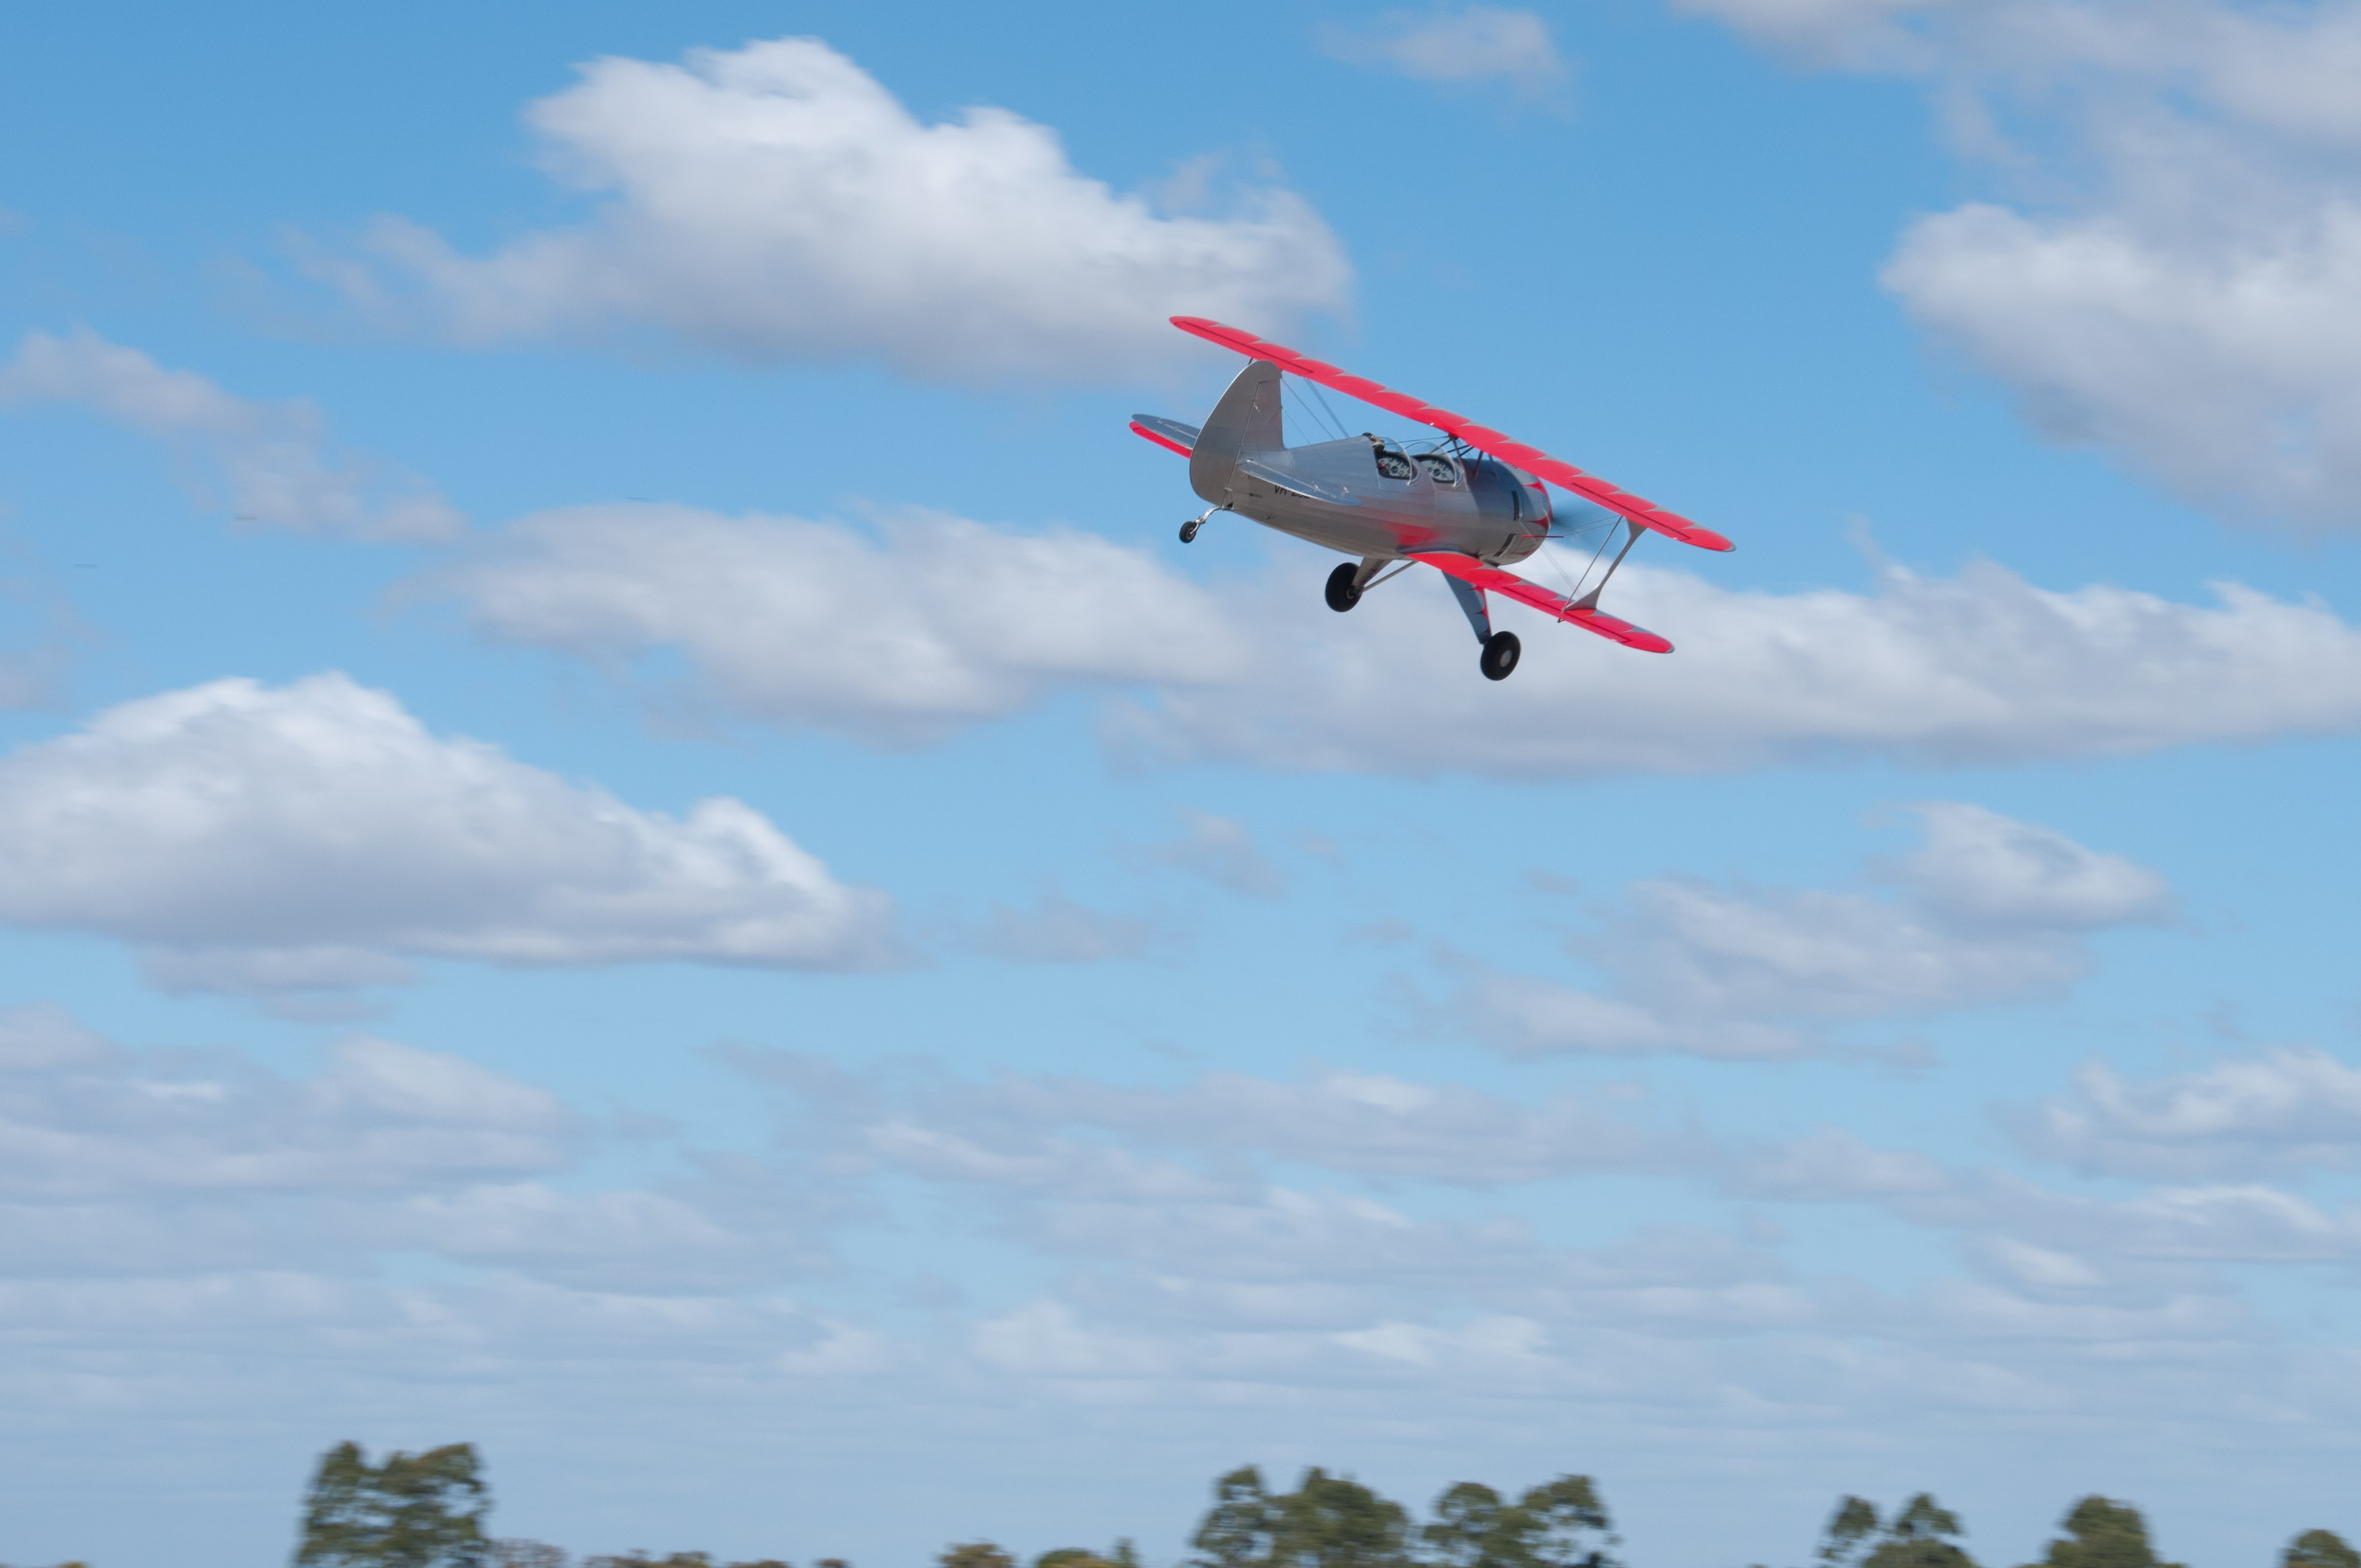 Serpentine SABC SAAA fly in aviation ufc uni flying club jandakot culp special flying peter cash